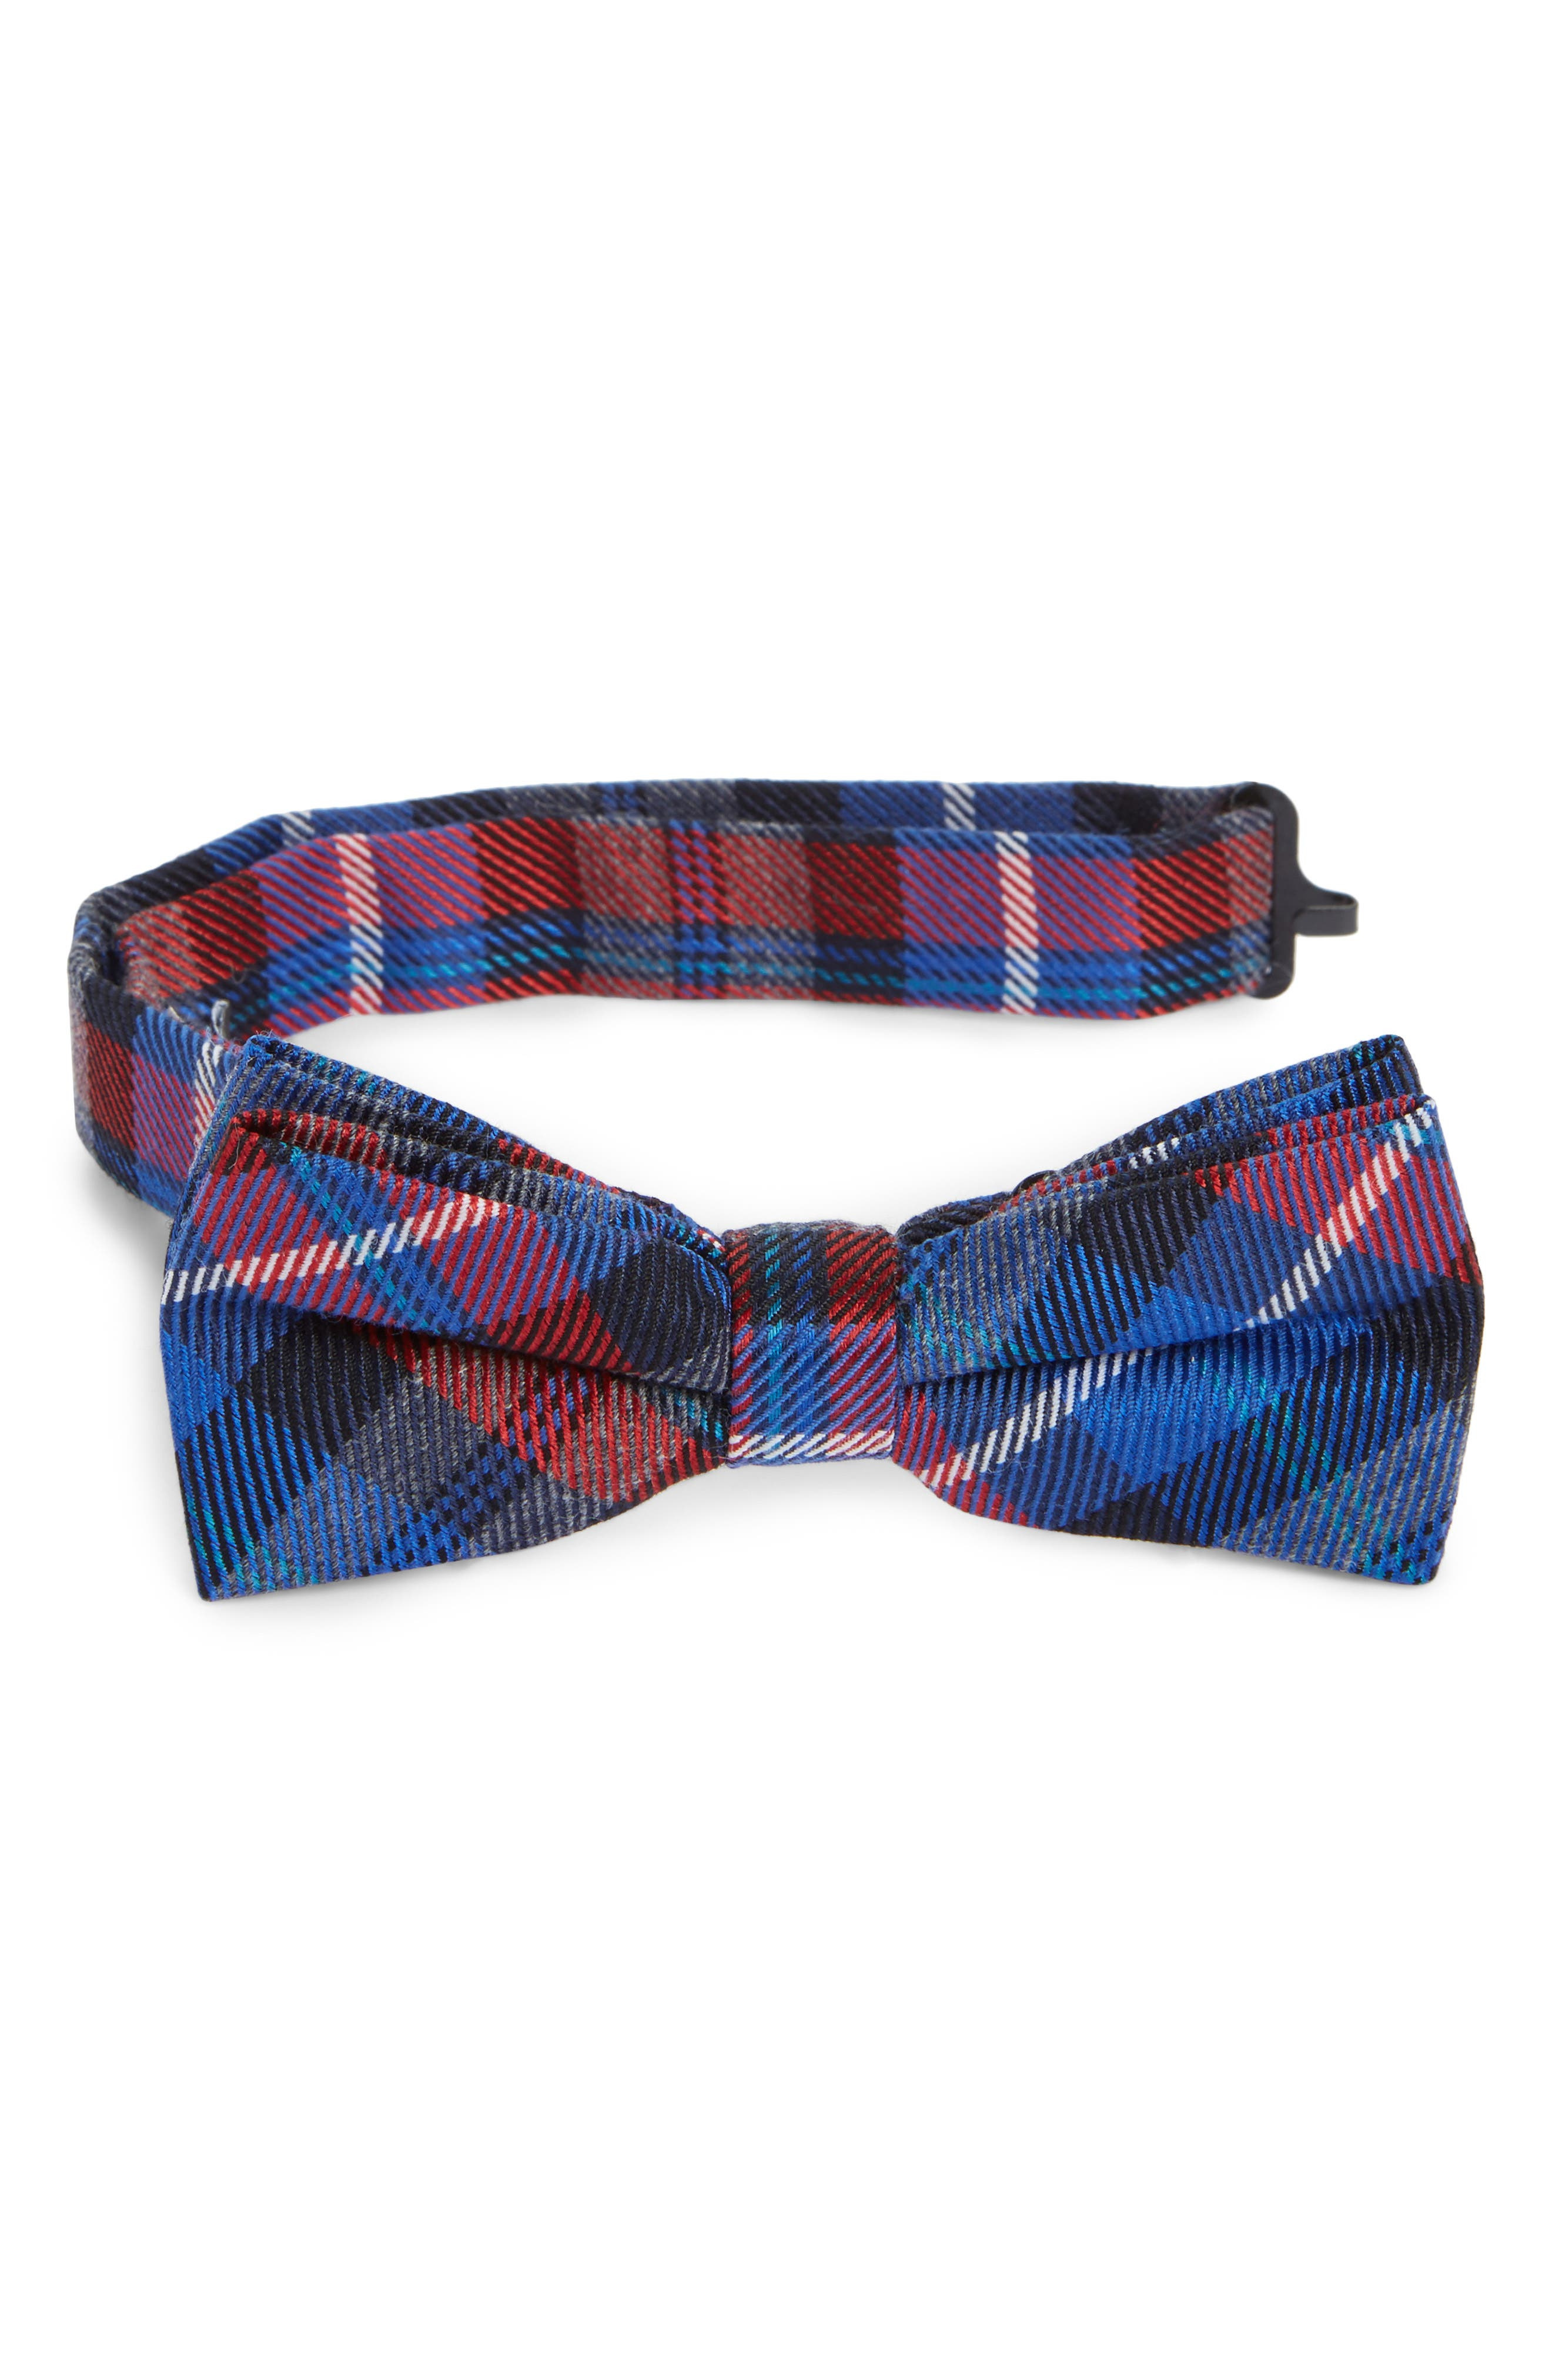 Alternate Image 1 Selected - Nordstrom Plaid Bow Tie (Big Boys)